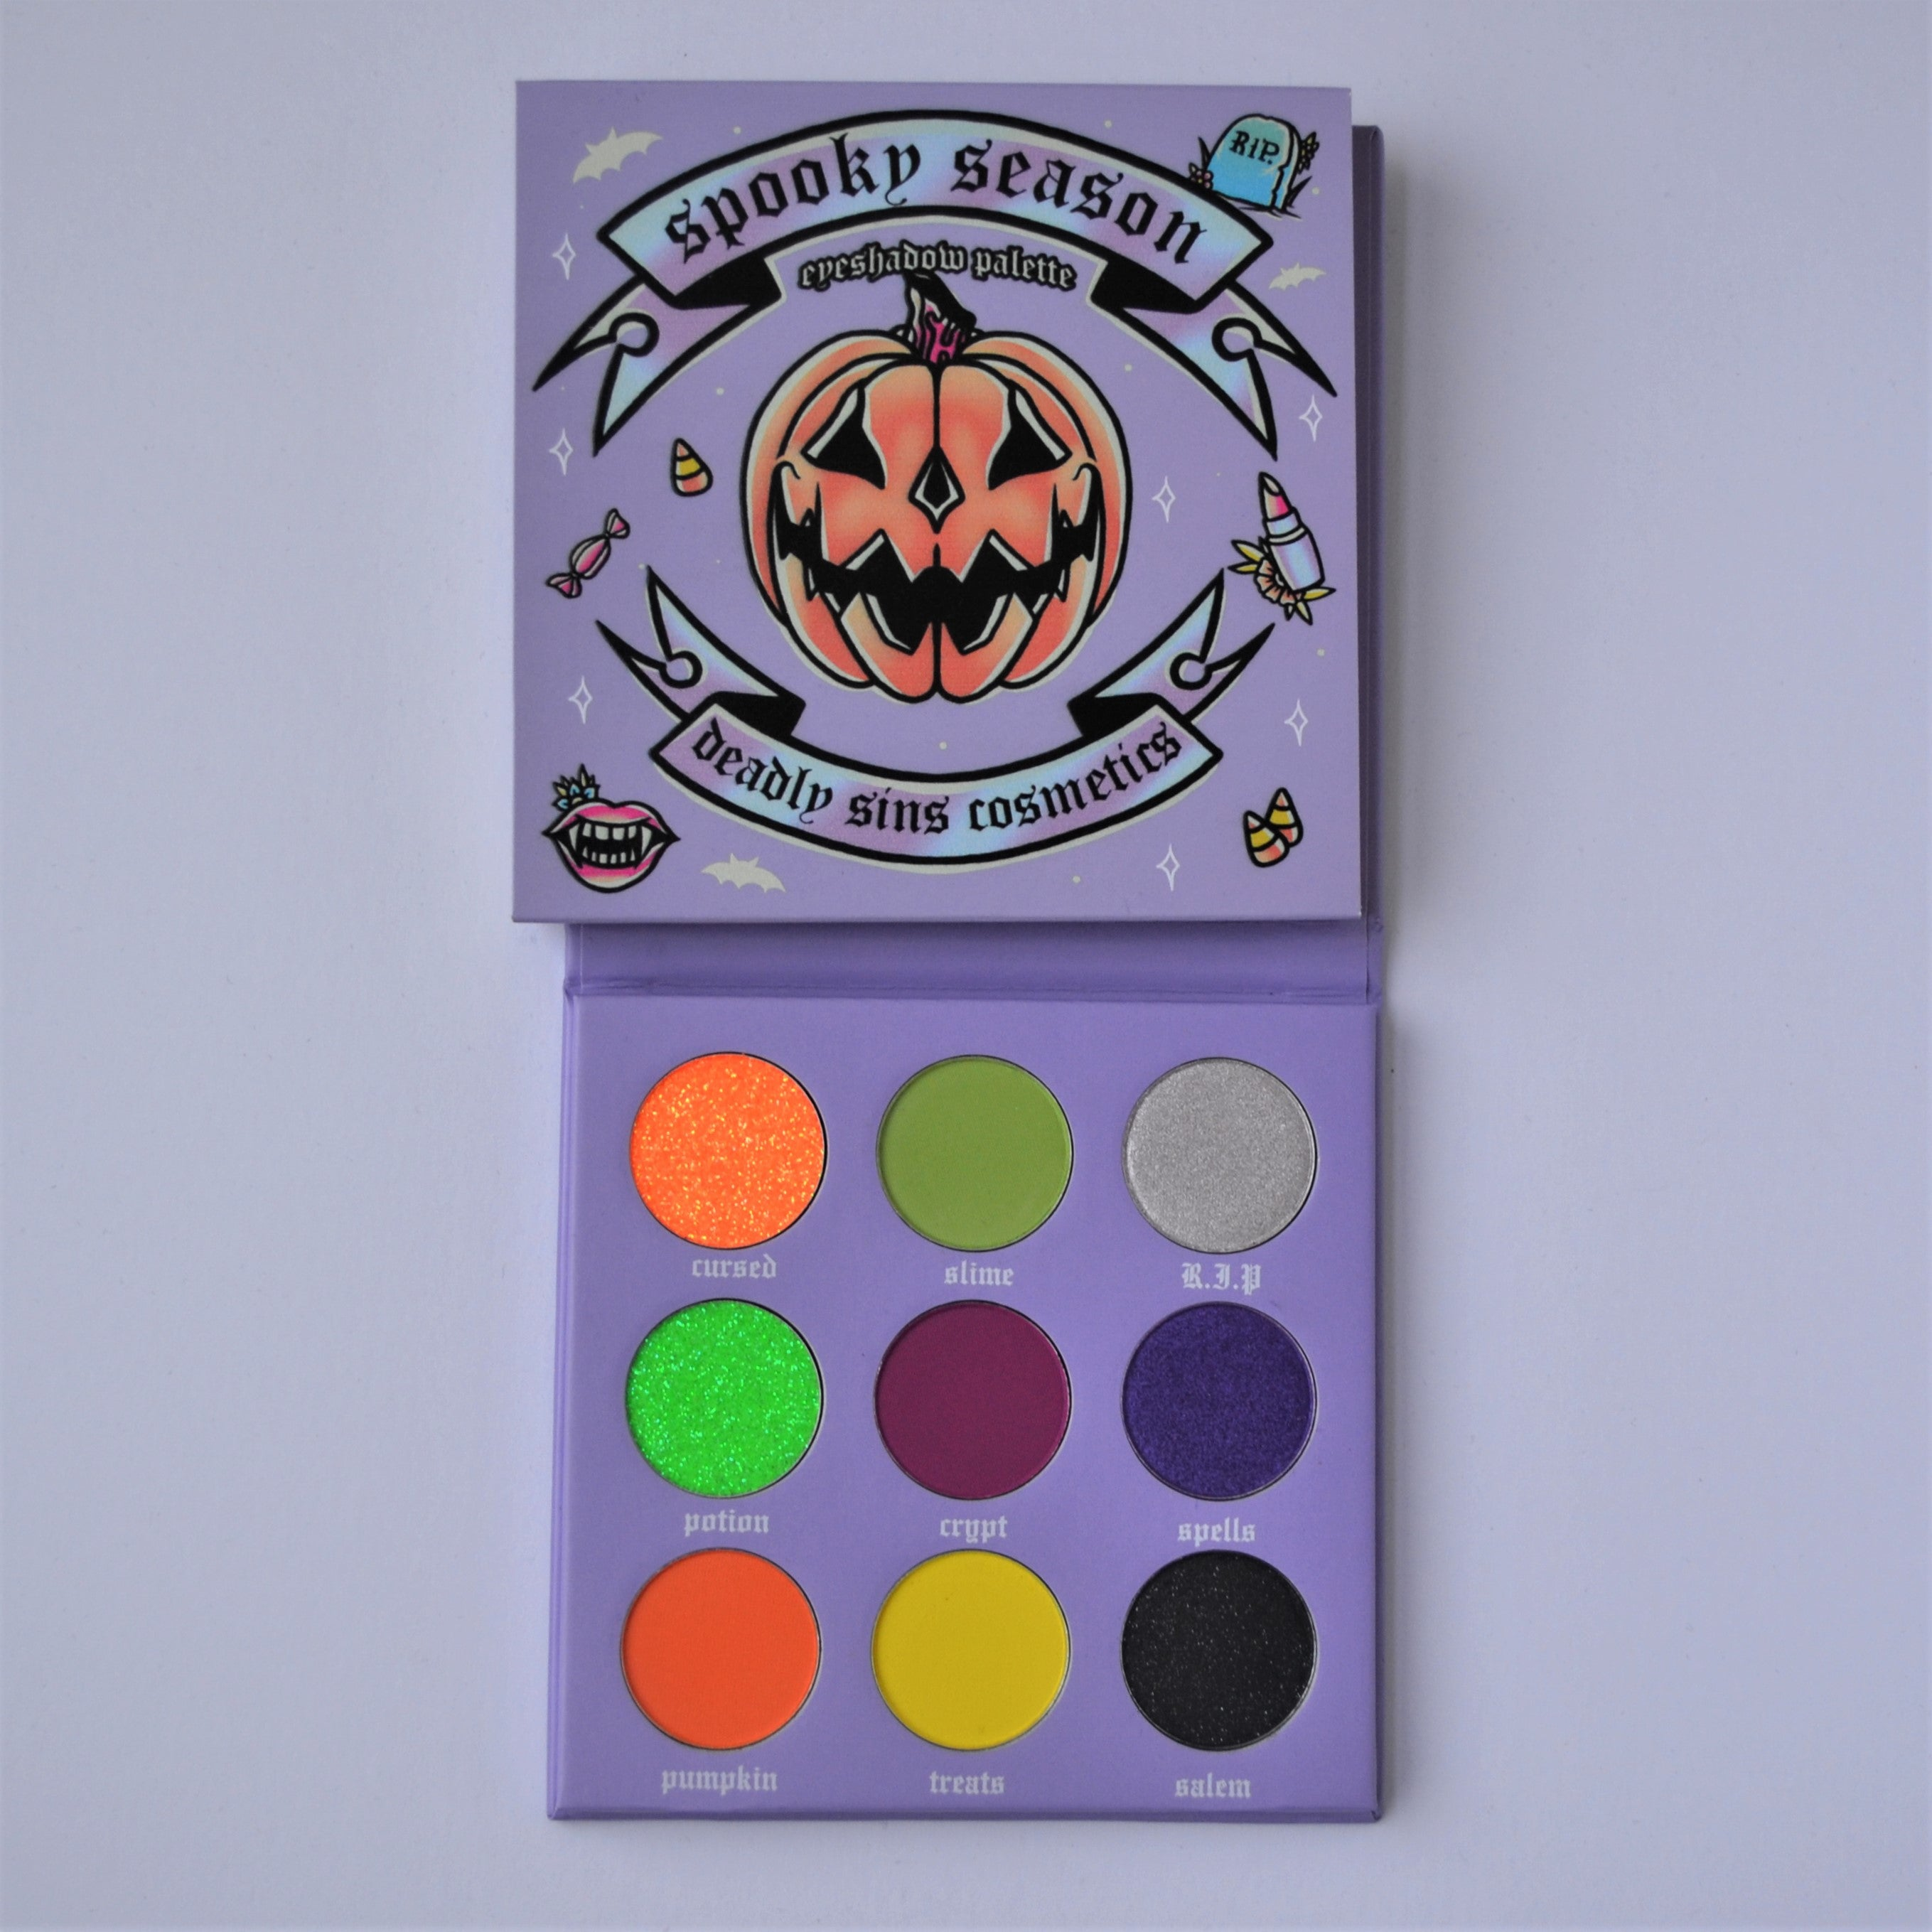 SPOOKY SEASON - EYESHADOW PALETTE - Makeup & vegan/cruelty free Cosmetics Products online | Melbourne | Deadly Sins Cosmetics